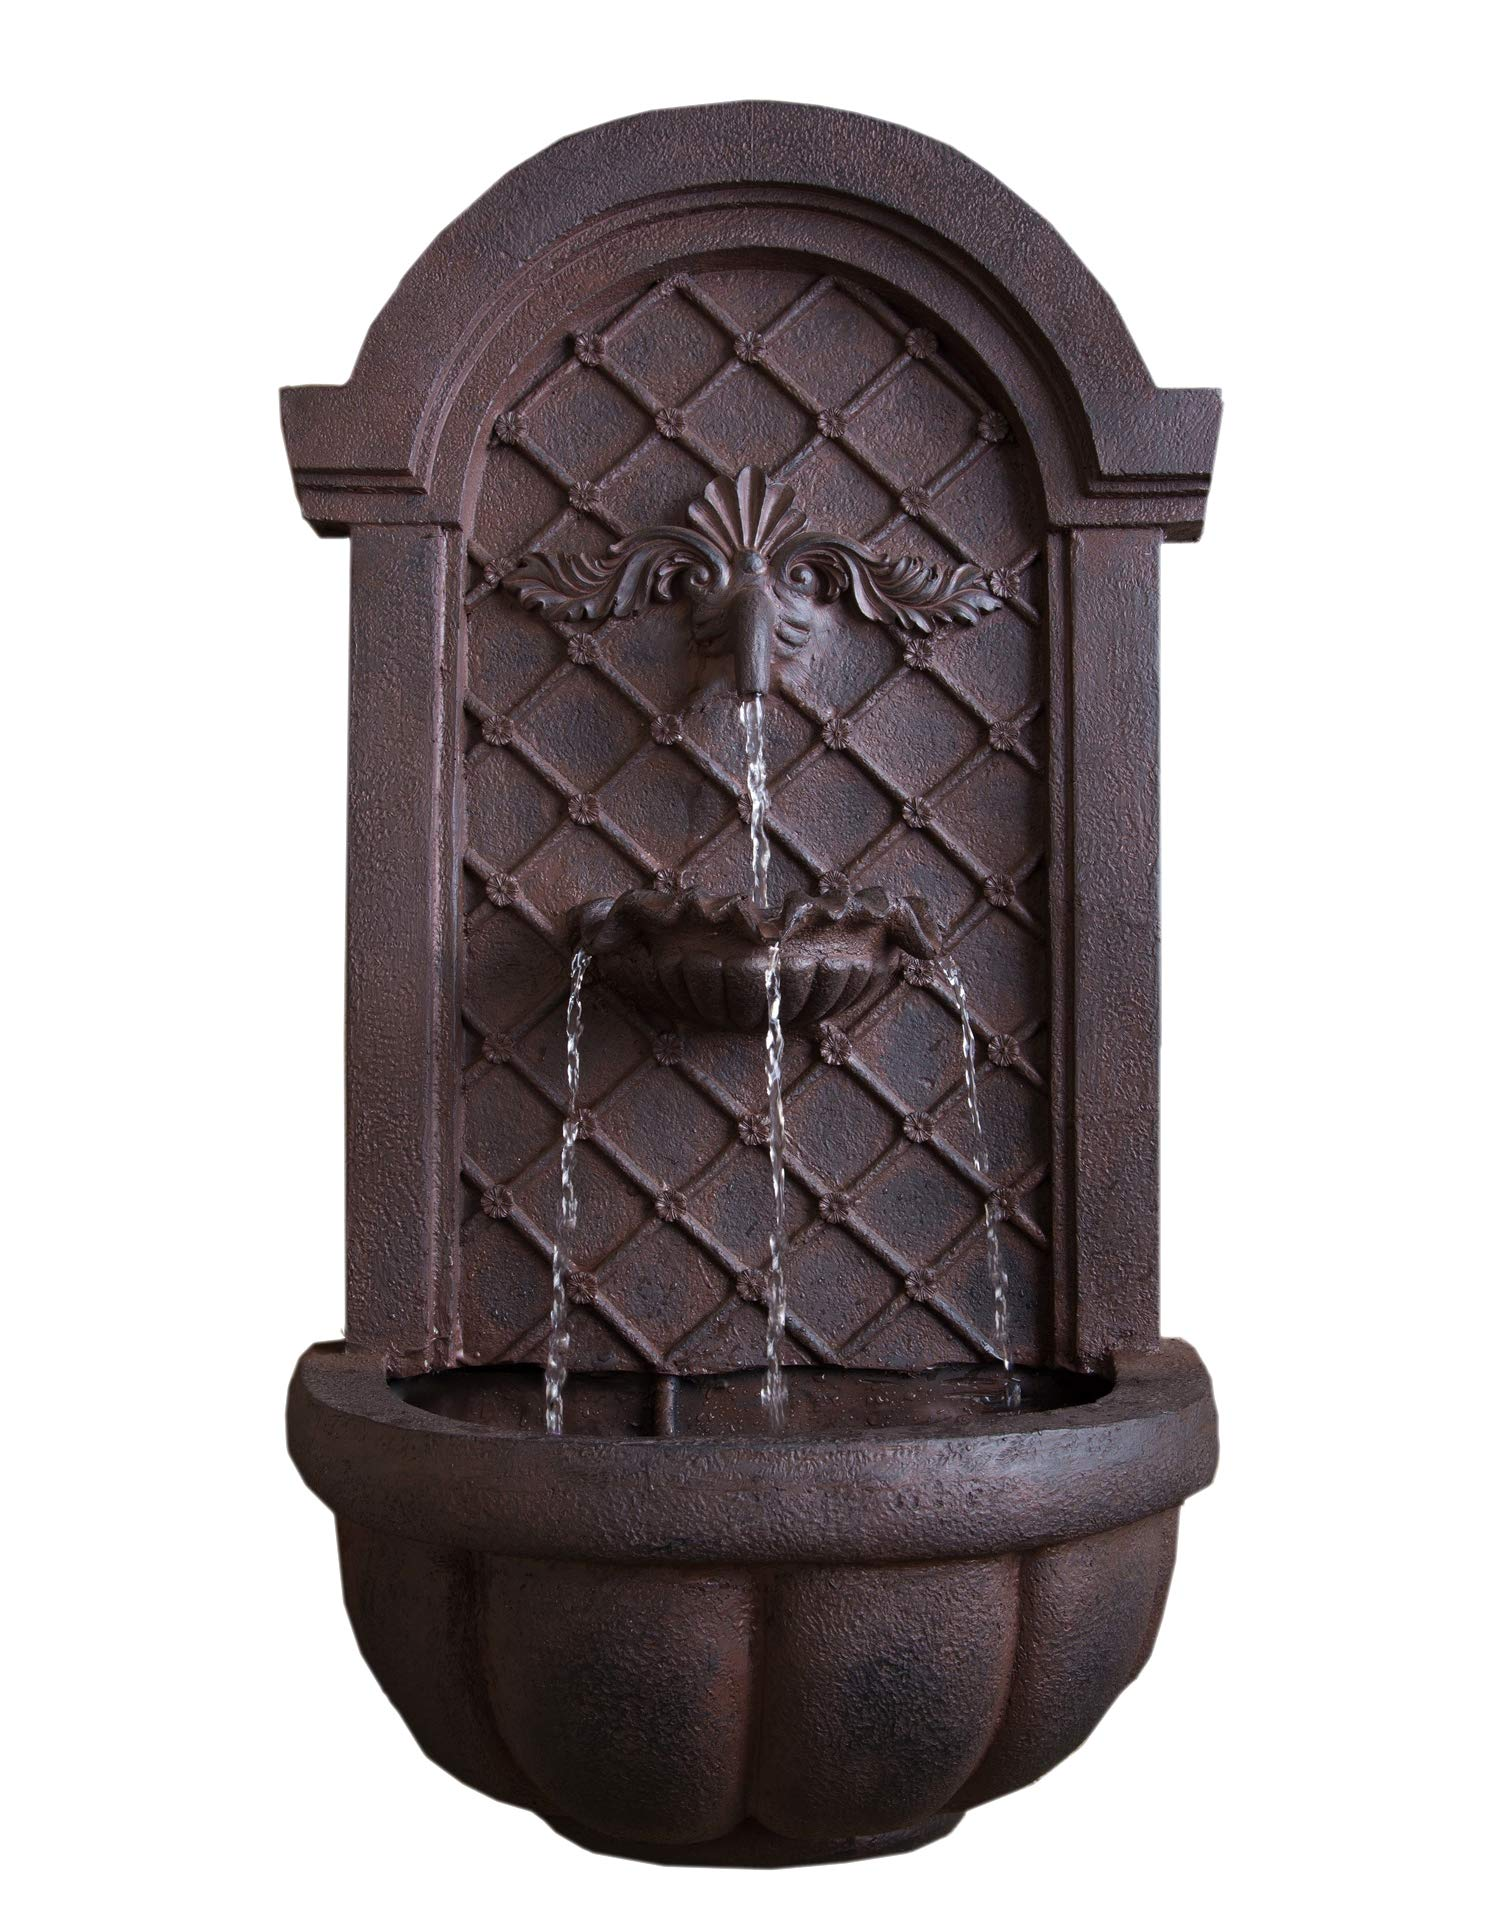 The Manchester - Outdoor Wall Fountain - Weathered Bronze - Water Feature for Garden, Patio and Landscape Enhancement by Harmony Fountains